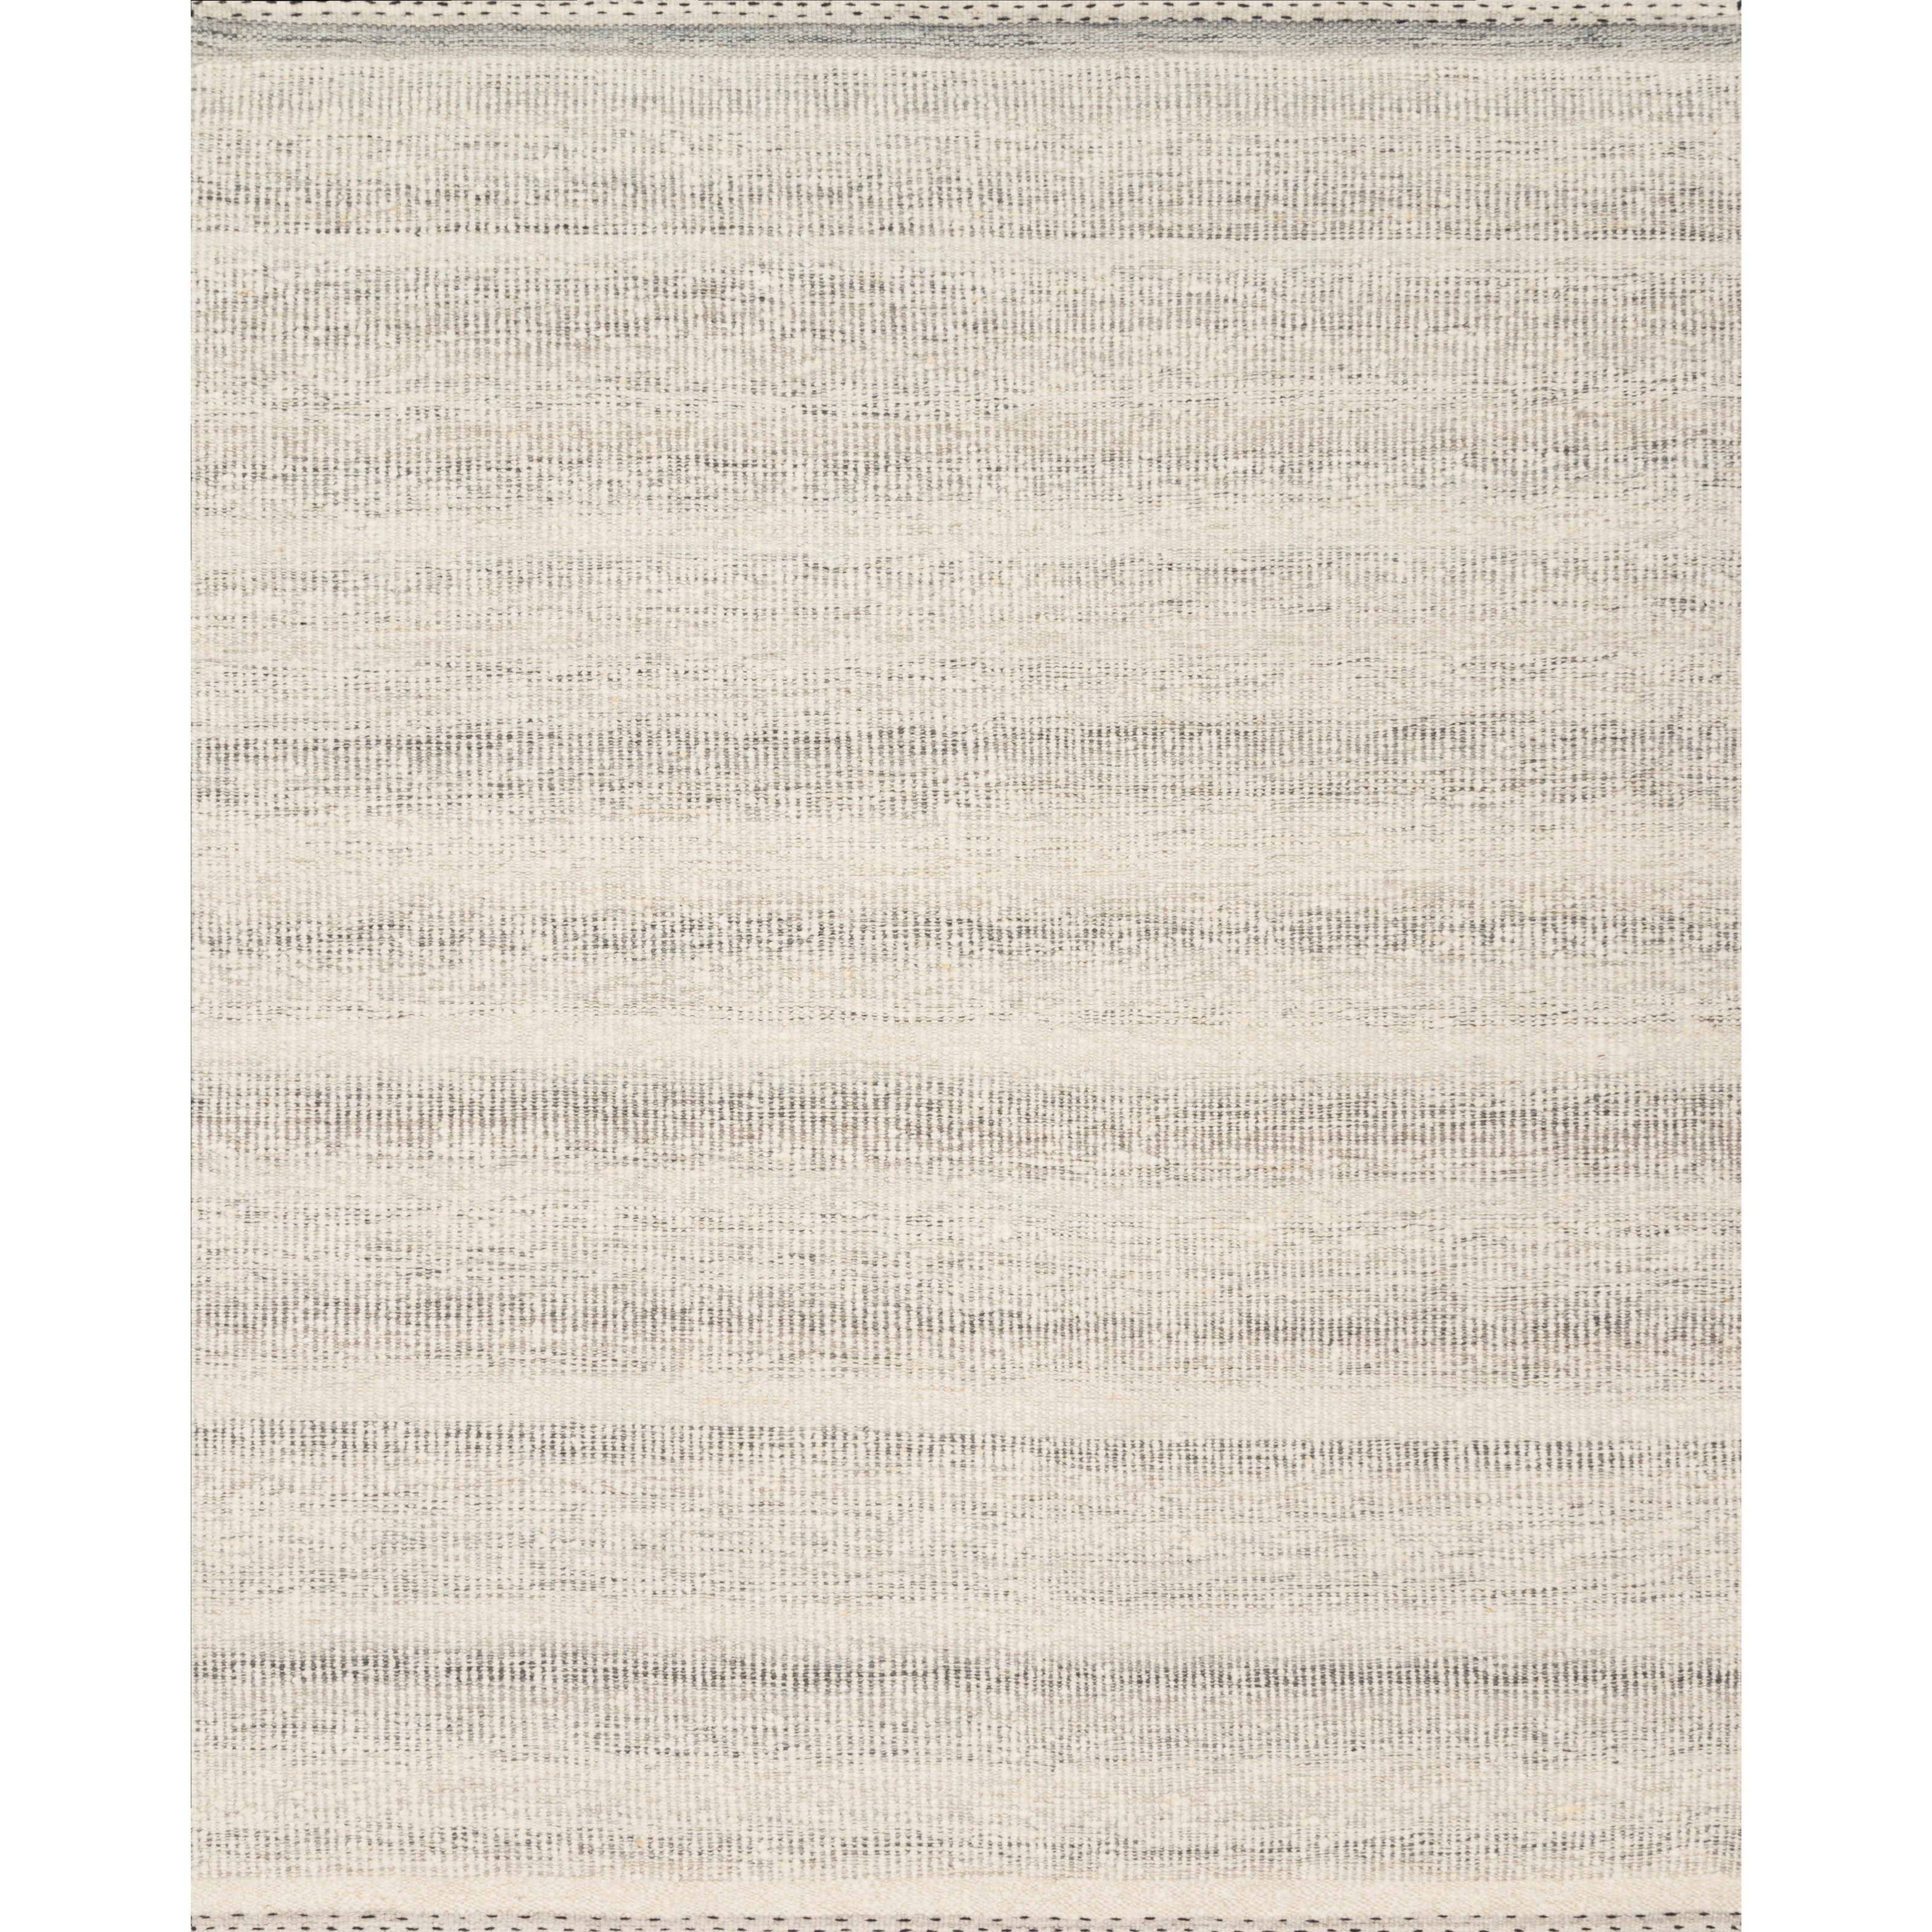 "Sloane 3'6"" x 5'6"" Smoke Rug by Loloi Rugs at Story & Lee Furniture"